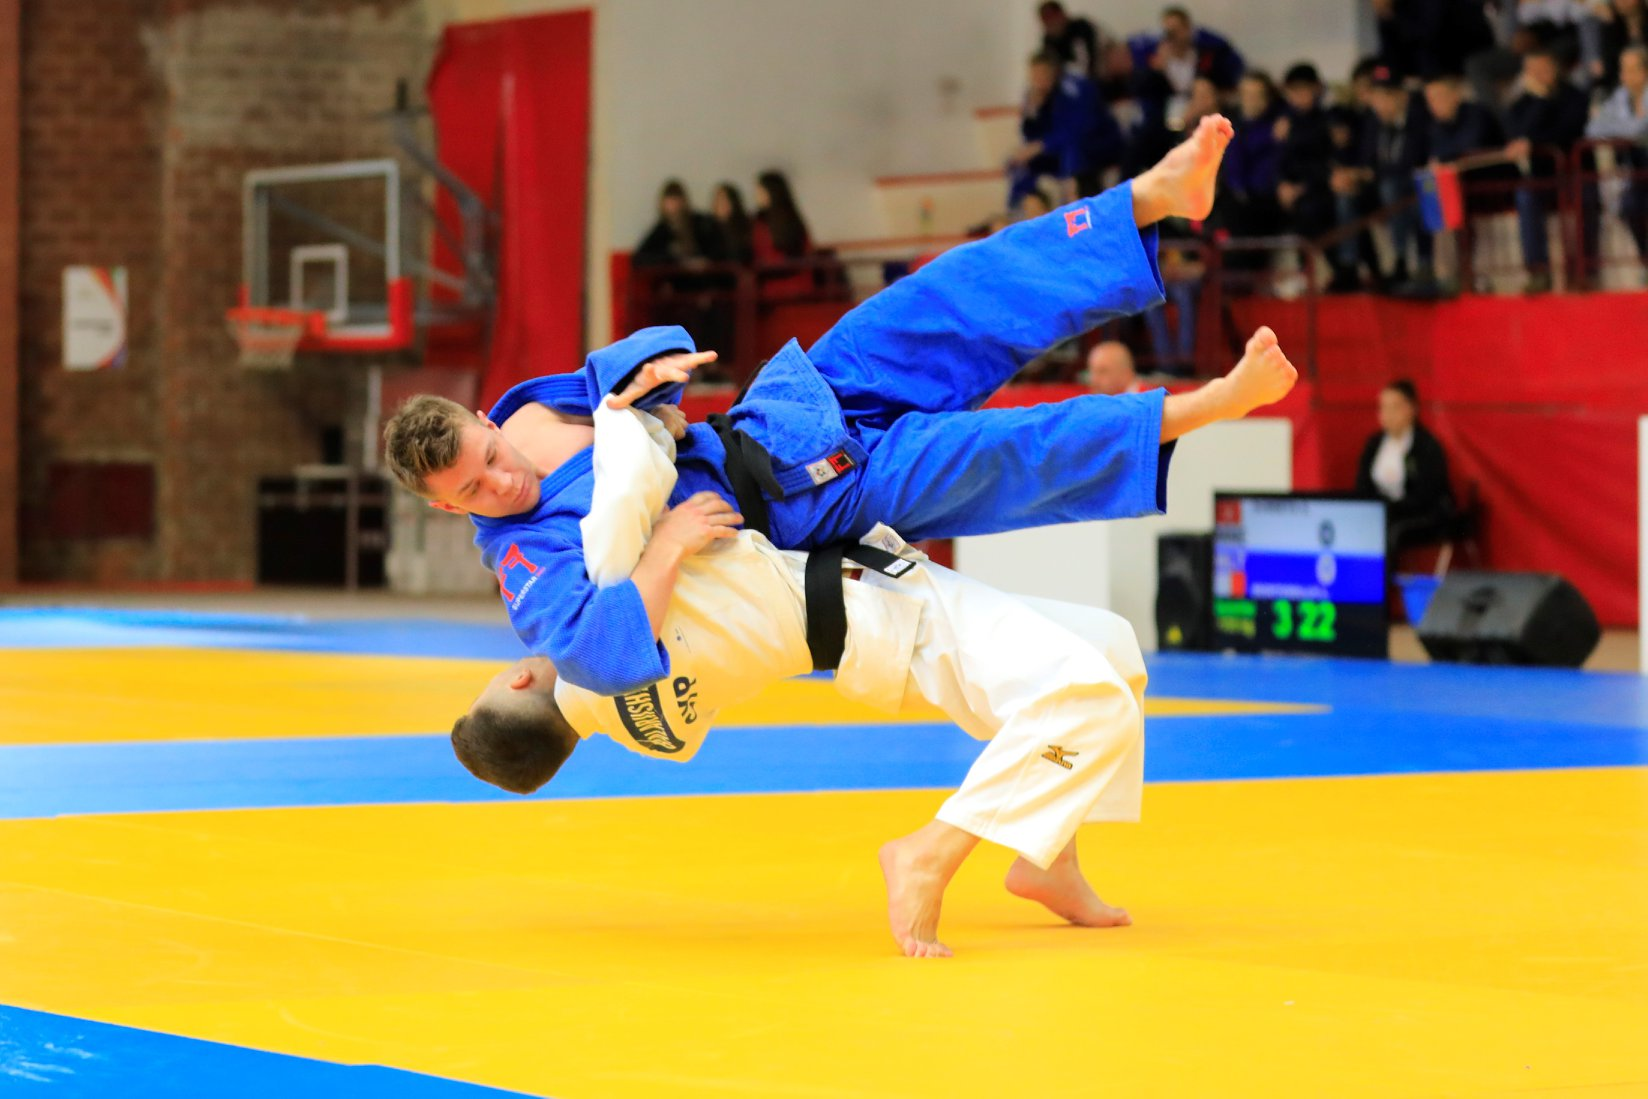 Giorgios Balajiasvili in action - Photo: Cyprus Olympic Committee